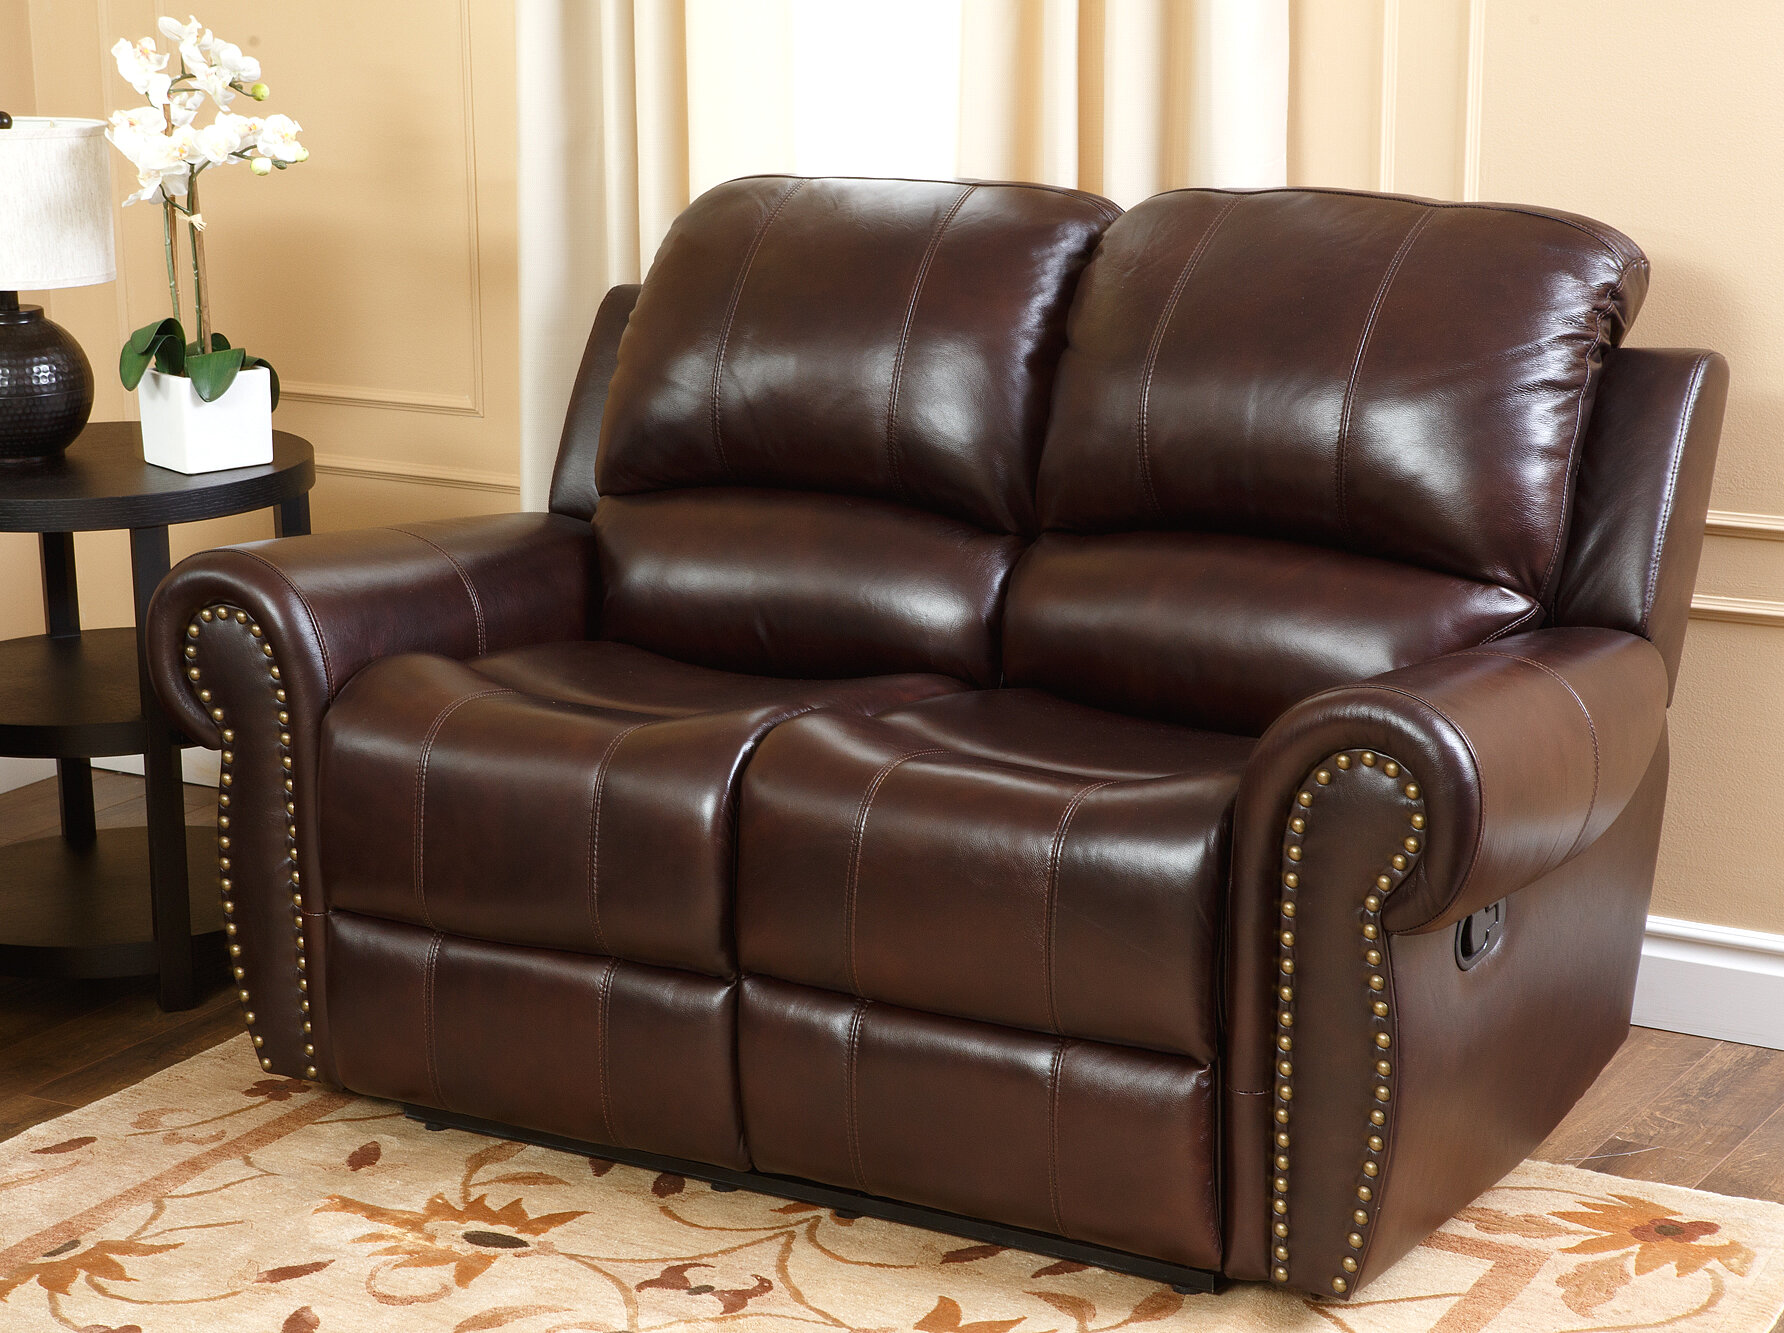 Barnsdale reclining italian leather sofa and loveseat set for Leather sofa and loveseat set